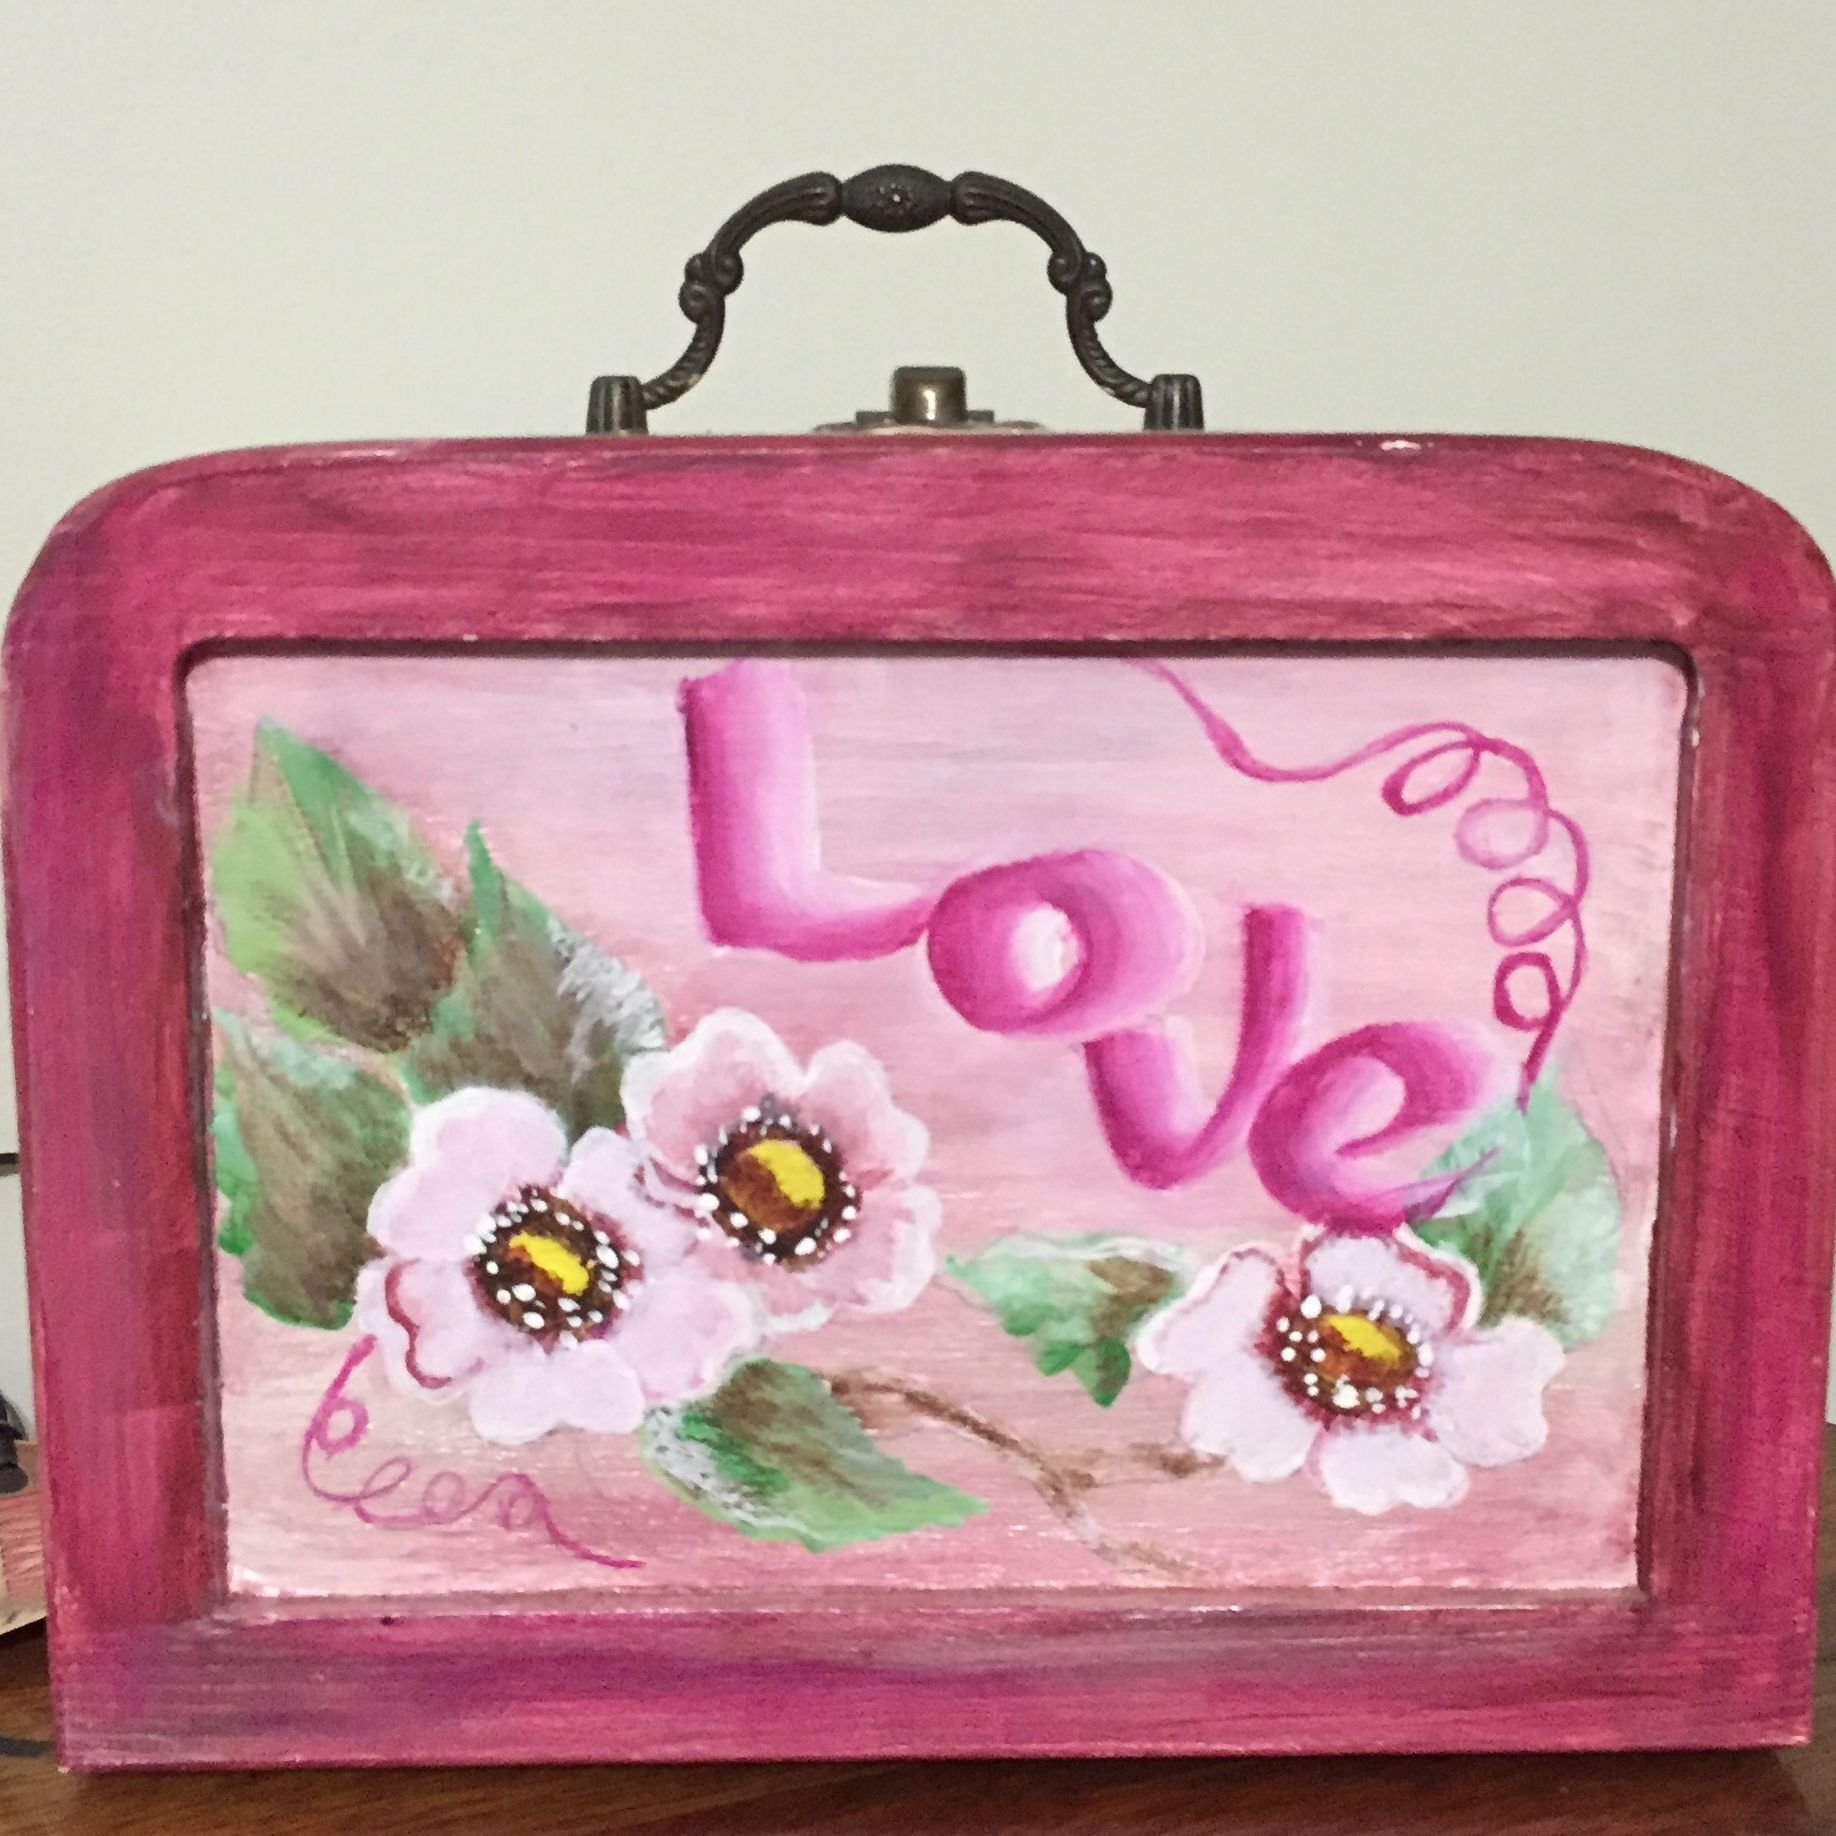 Painting on a small box.